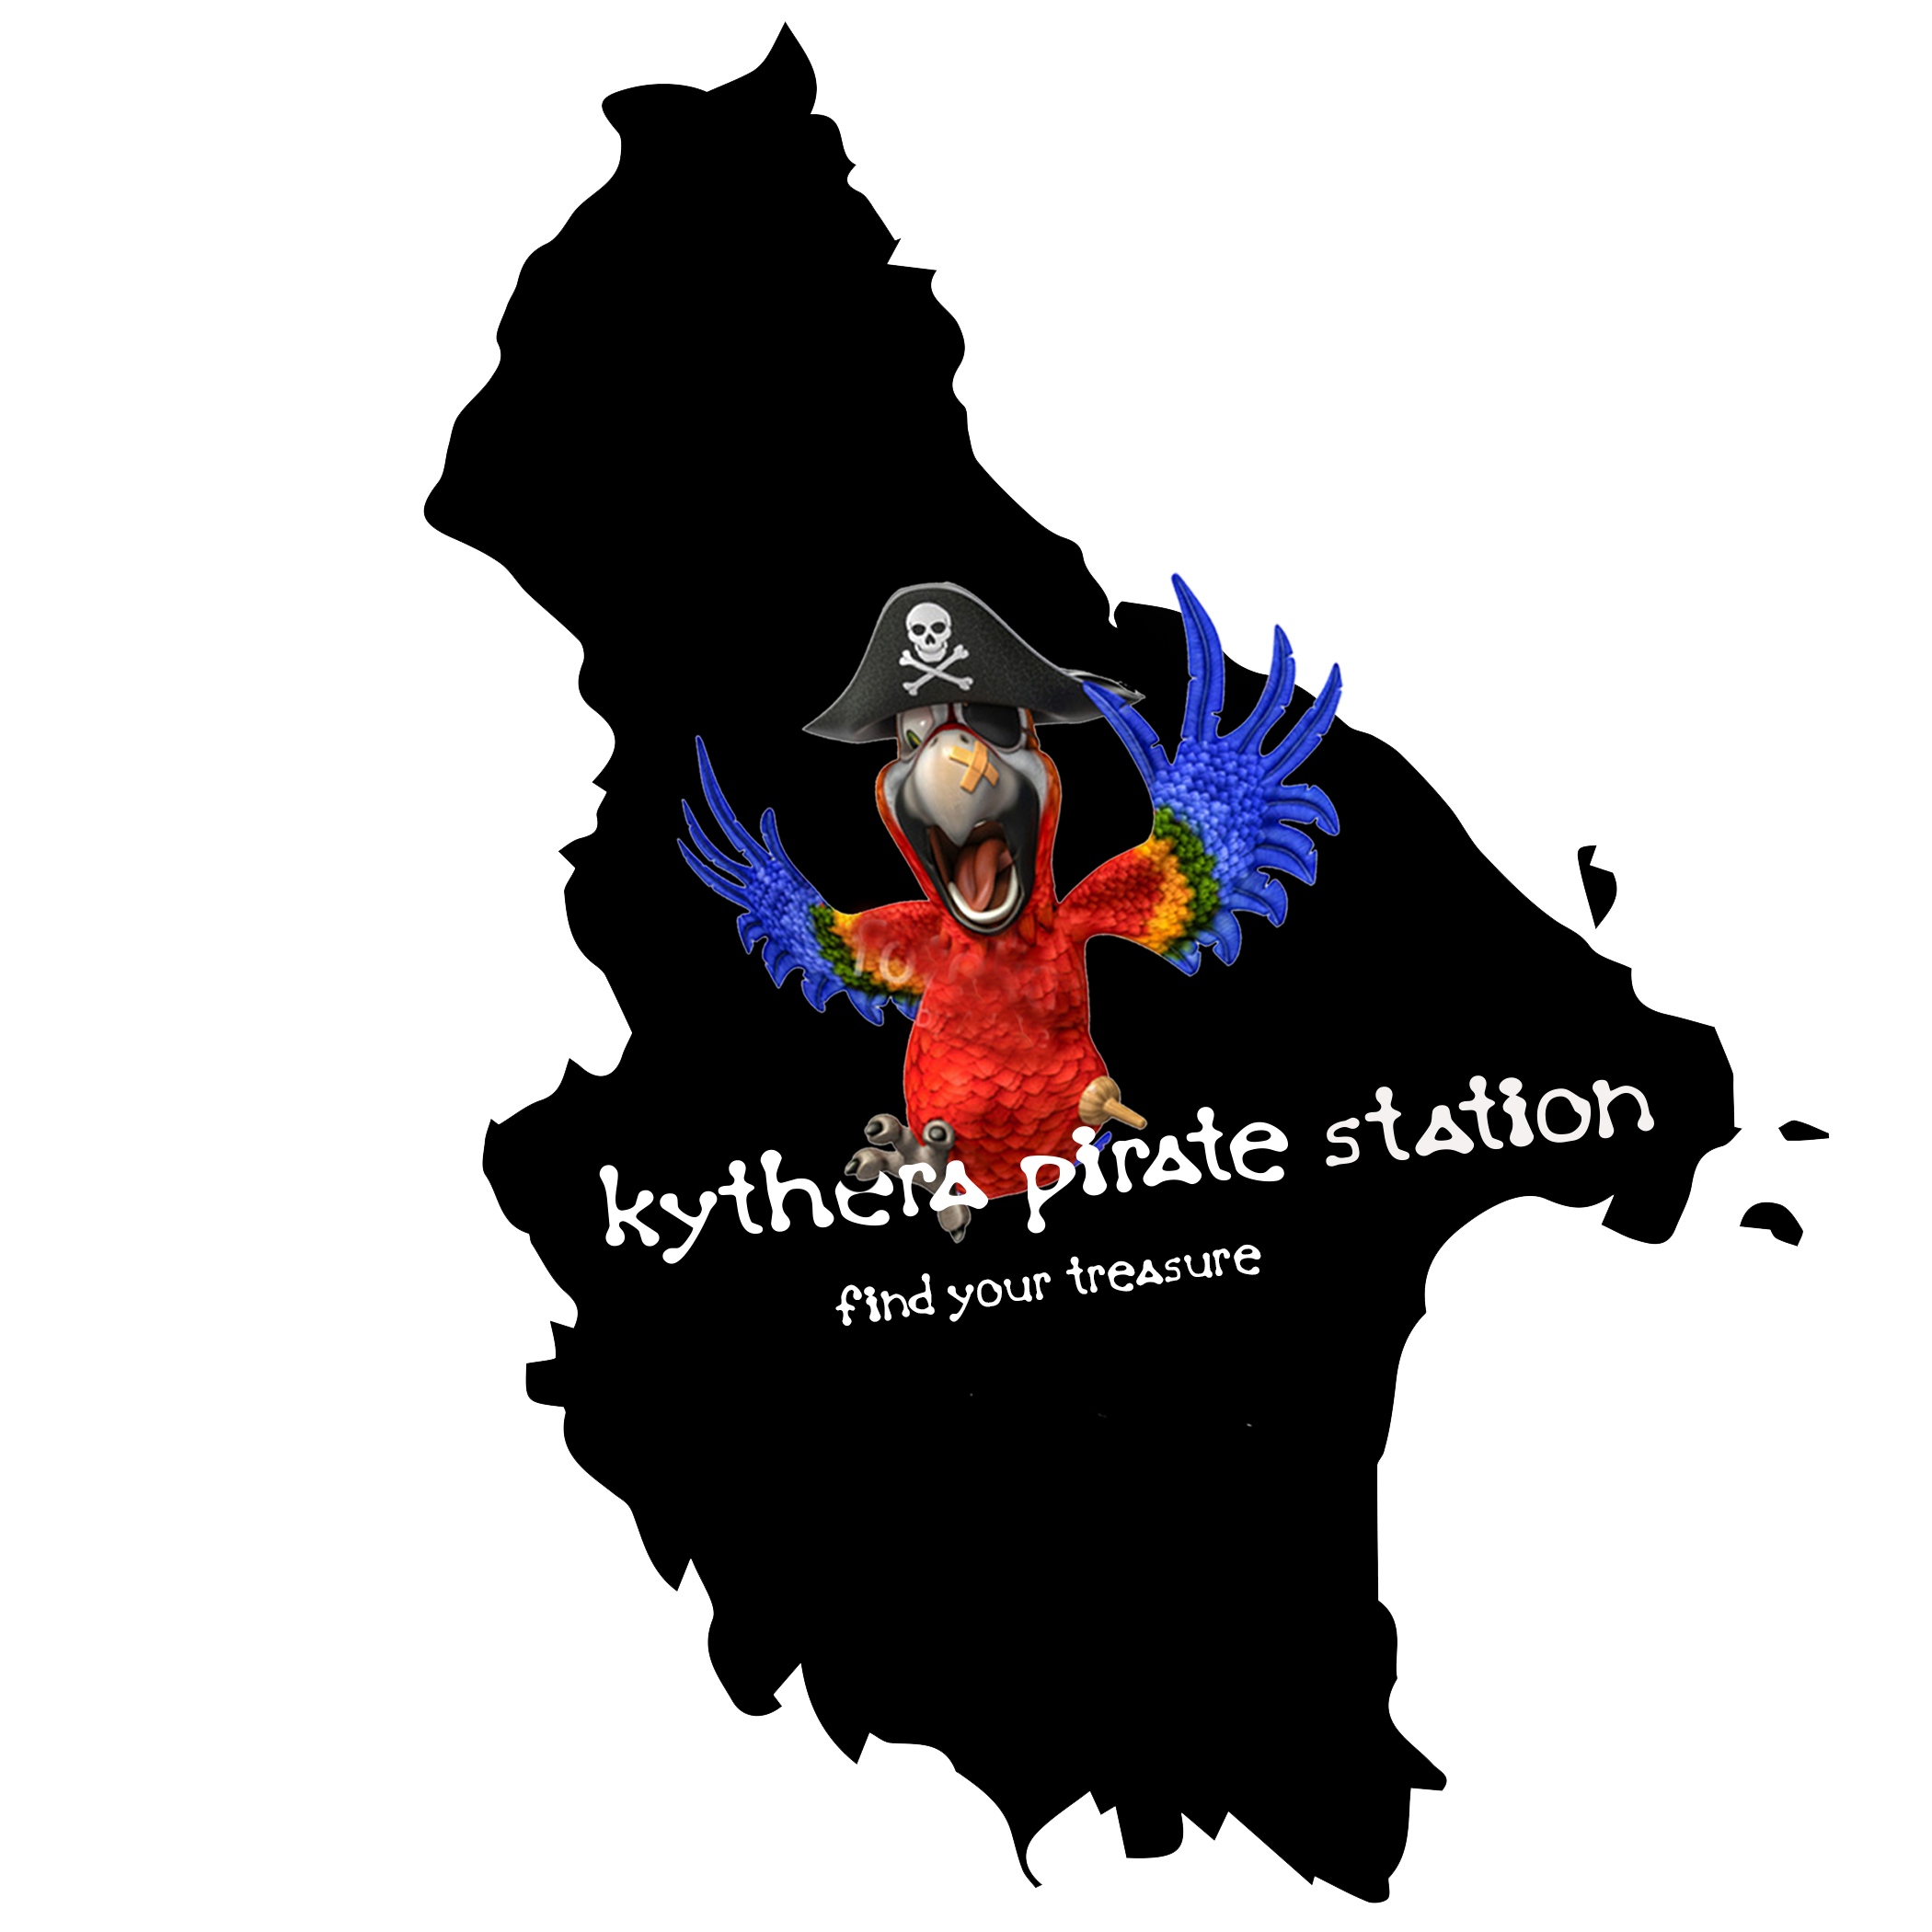 YOHOHO KYTHERA PIRATE STATION